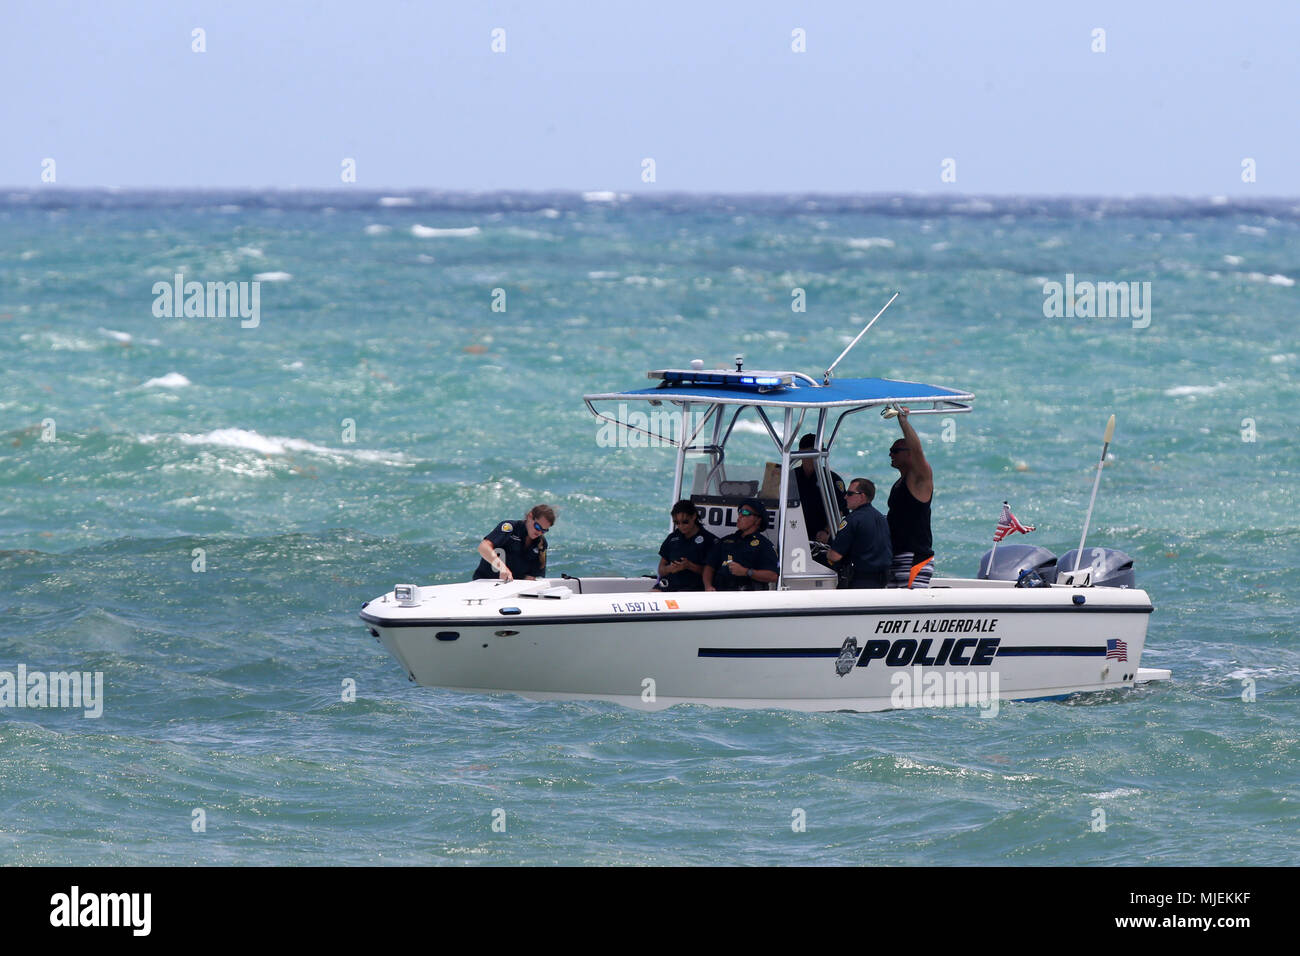 Fort Lauderdale, Florida, USA. 5th May, 2018.  Police Boat performs at The Fort Lauderdale Air Show on May 5, 2018 in Fort Lauderdale, Florida.    People:  Police Boat Credit: Storms Media Group/Alamy Live News Stock Photo